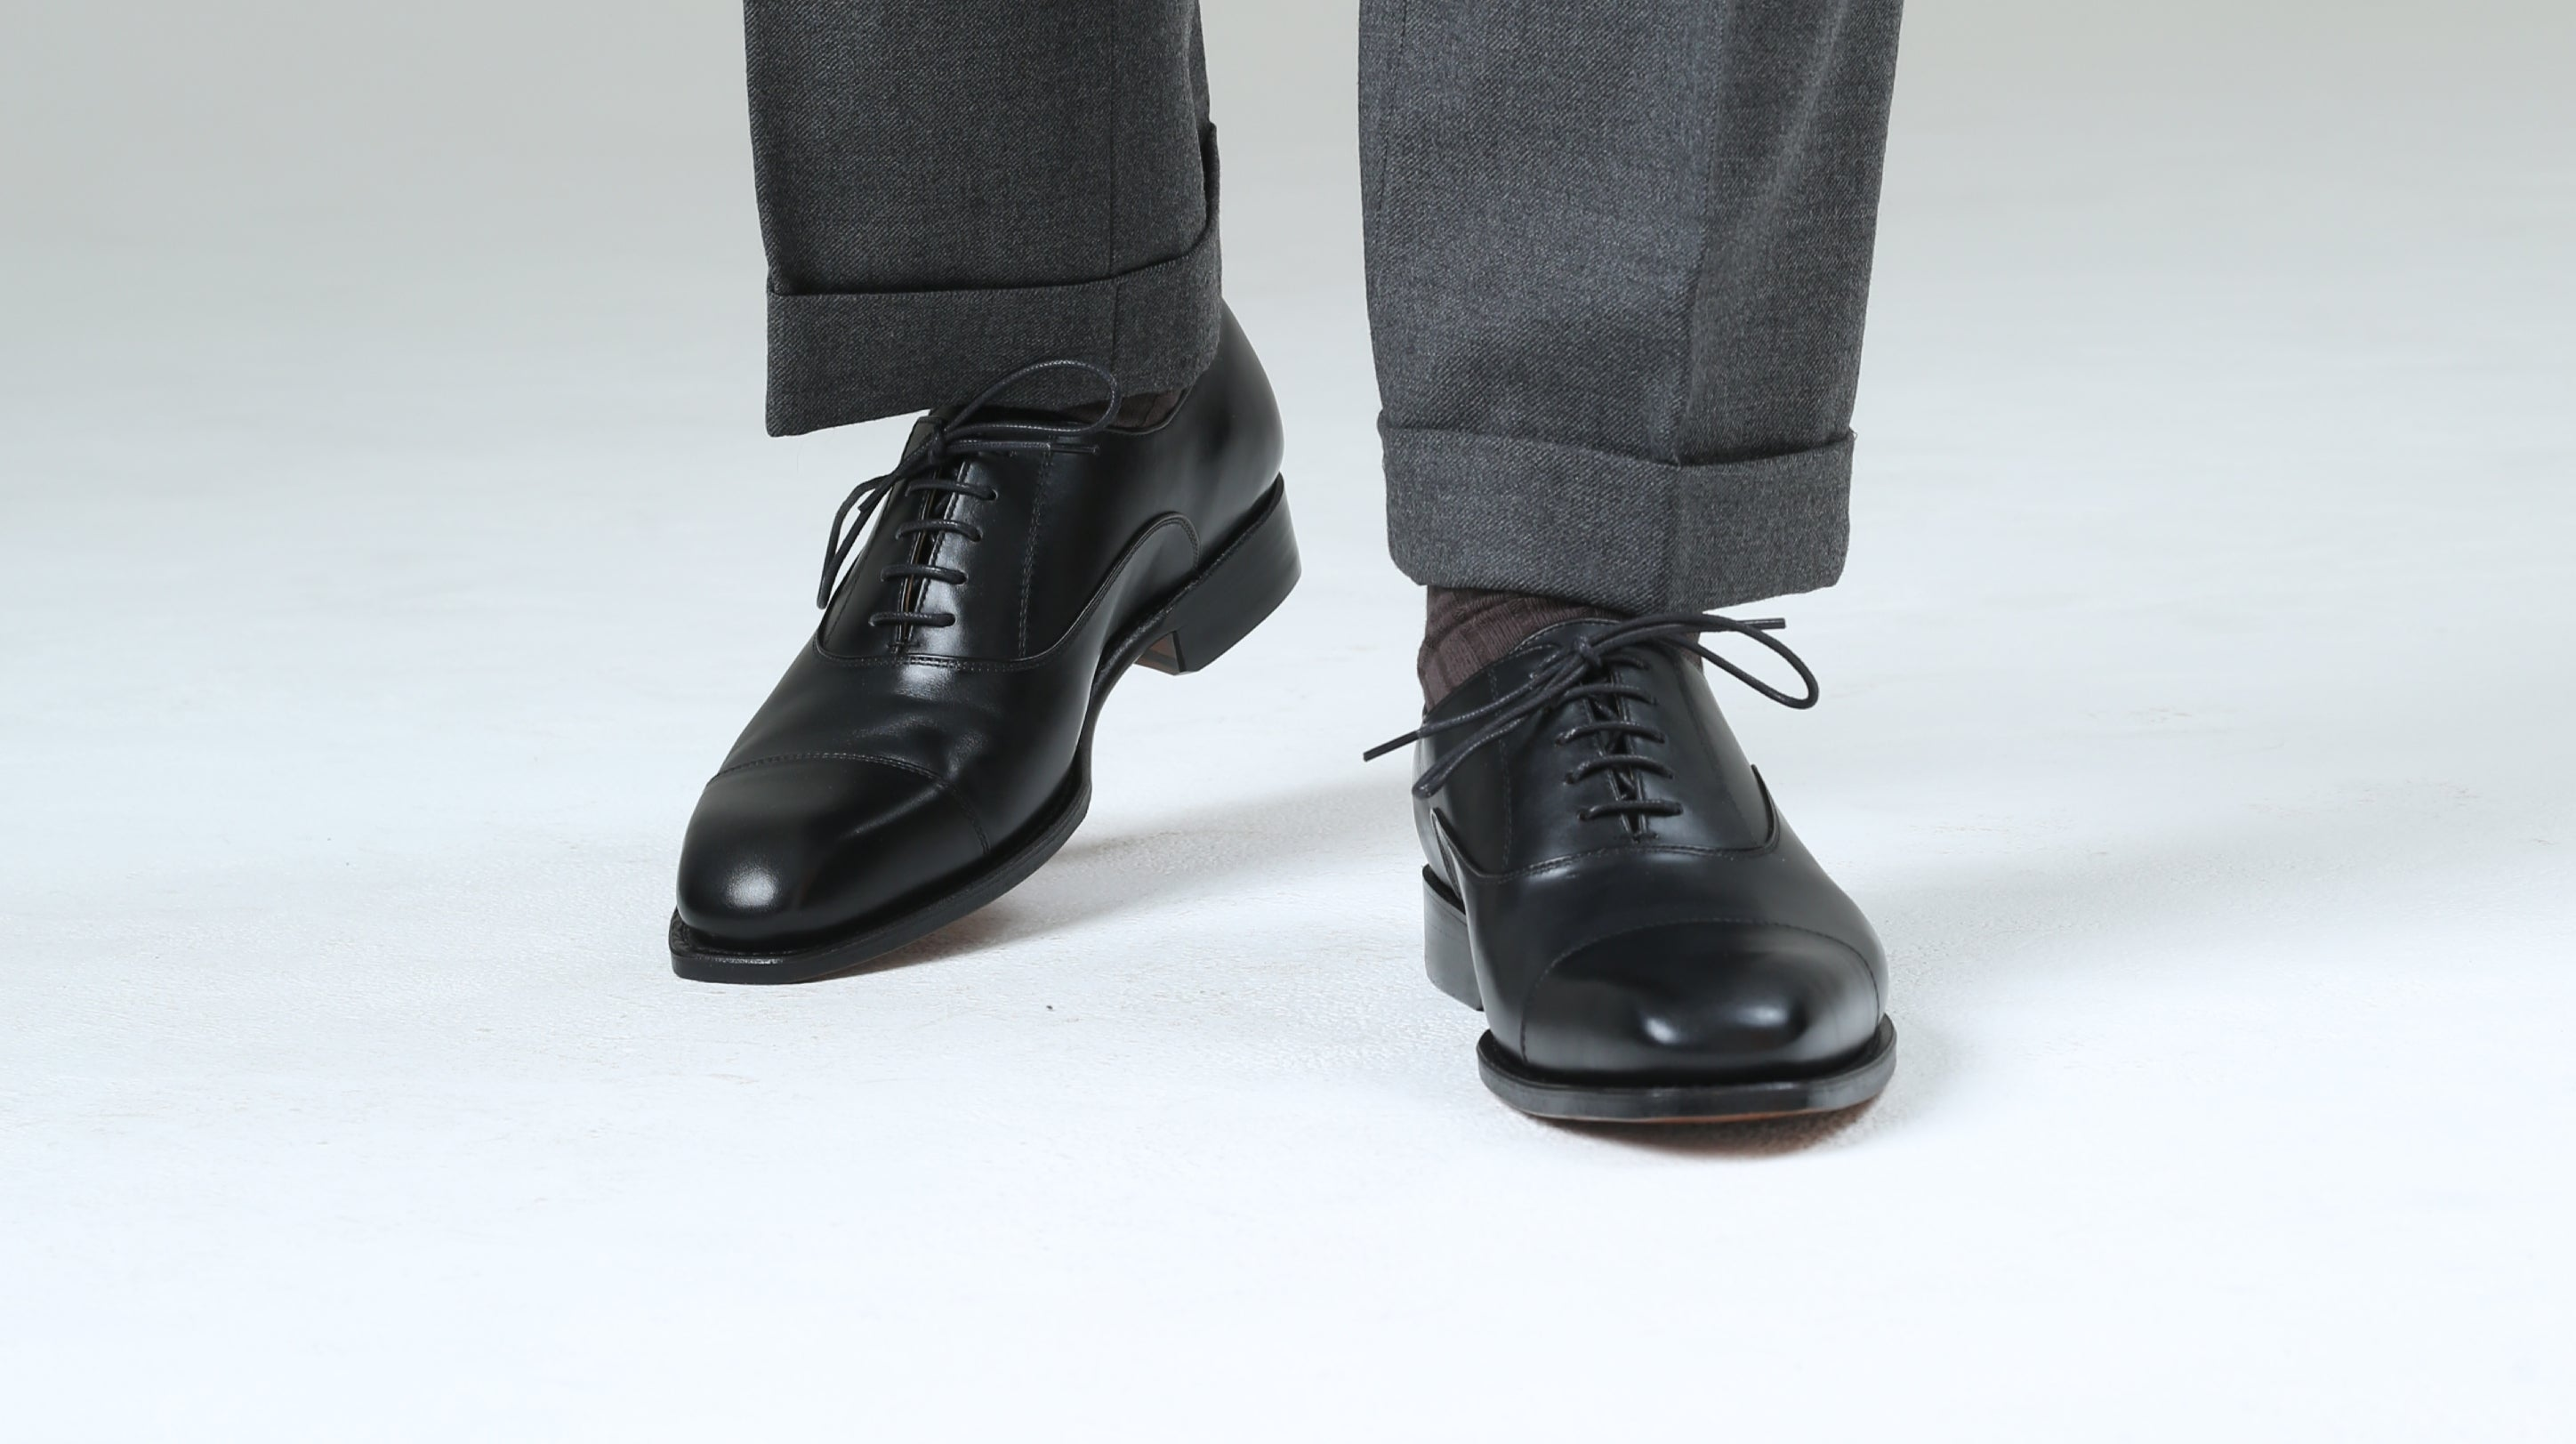 The Wordsworth captoe oxford, an office workers staple shoe